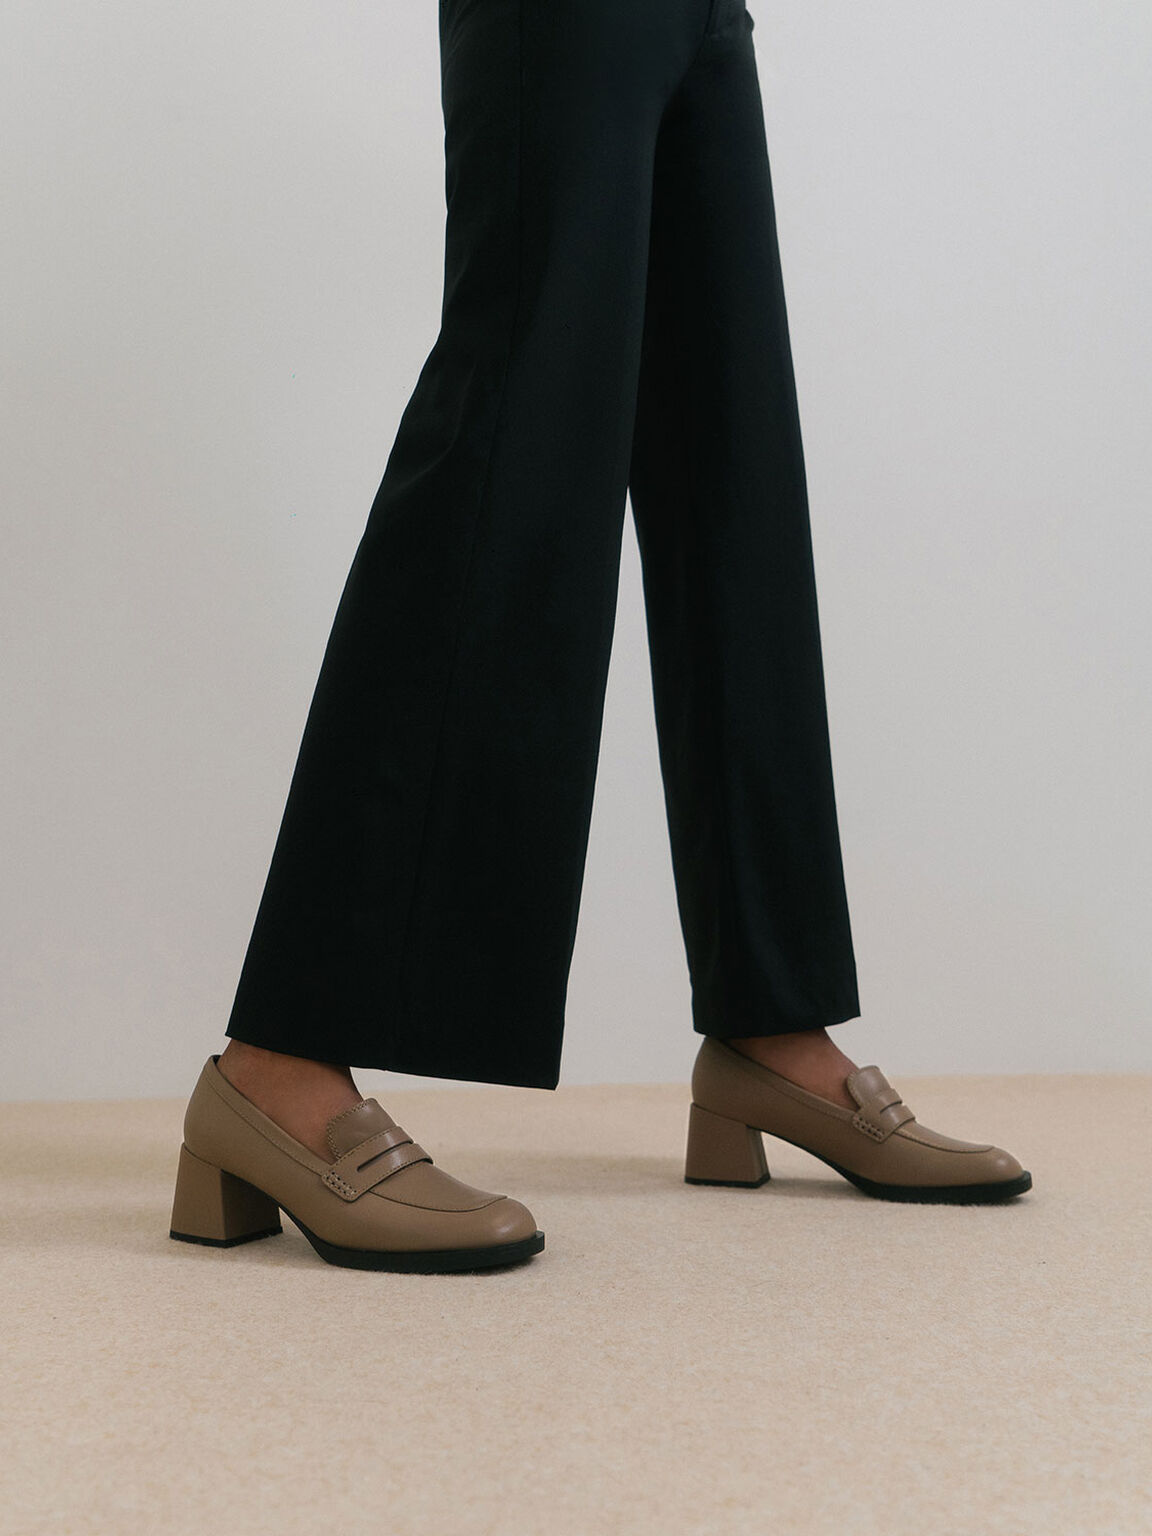 Penny Loafer Court Shoes, Brown, hi-res